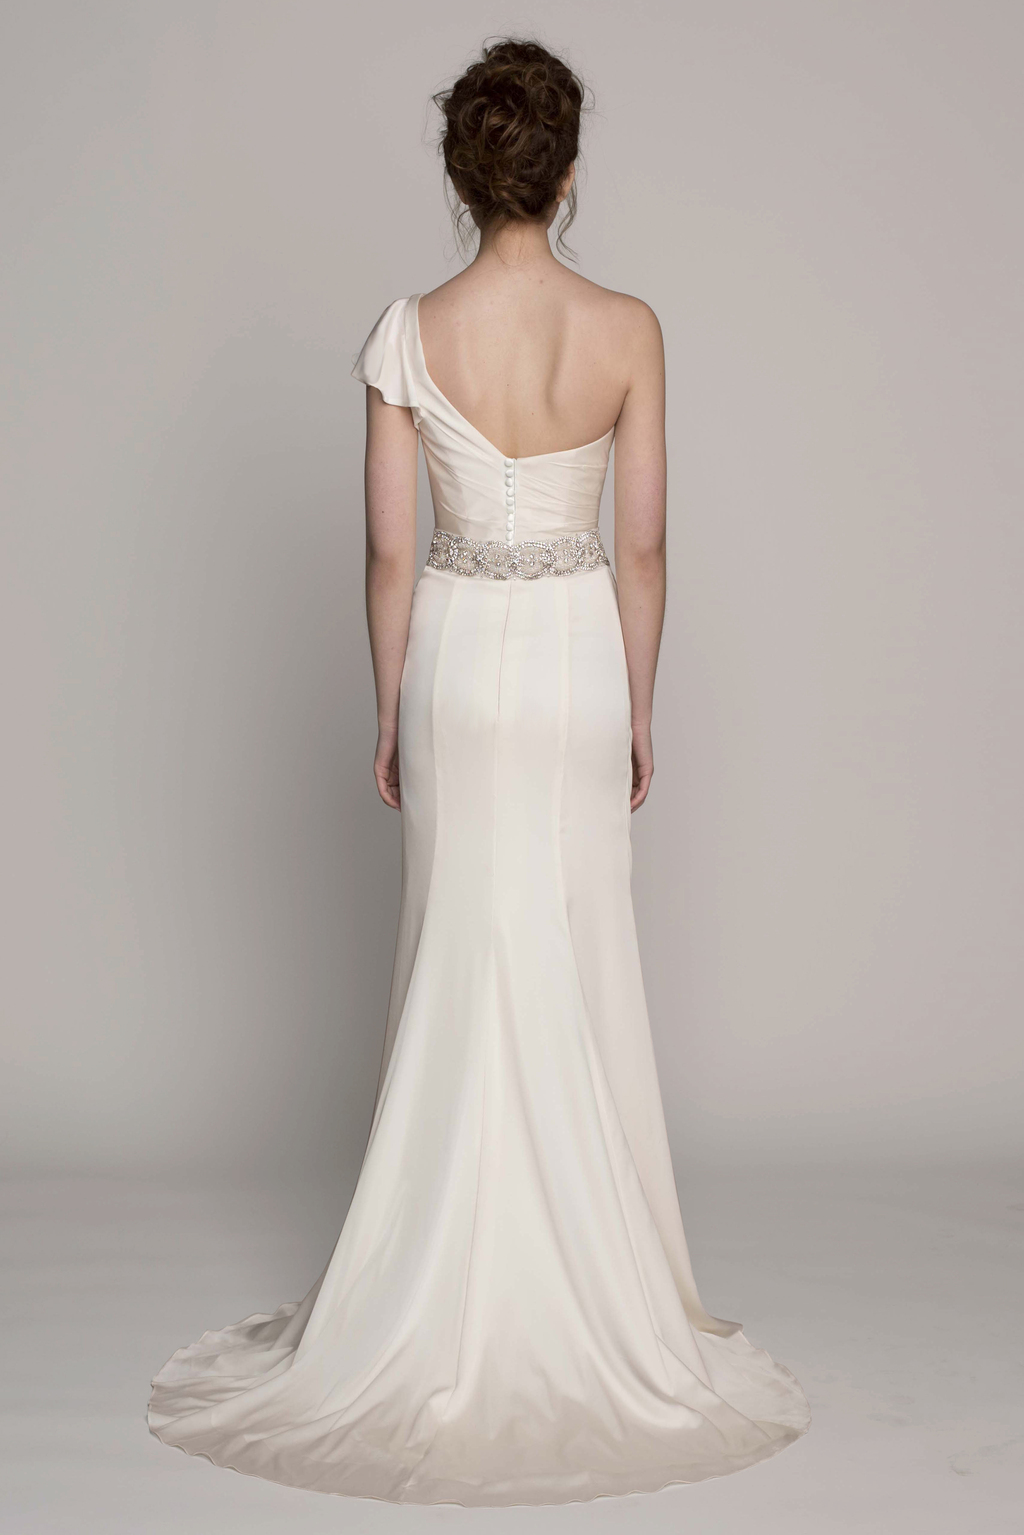 Kelly-faetanini-wedding-dress-2014-spring-bridal-gown-collection-martine.full